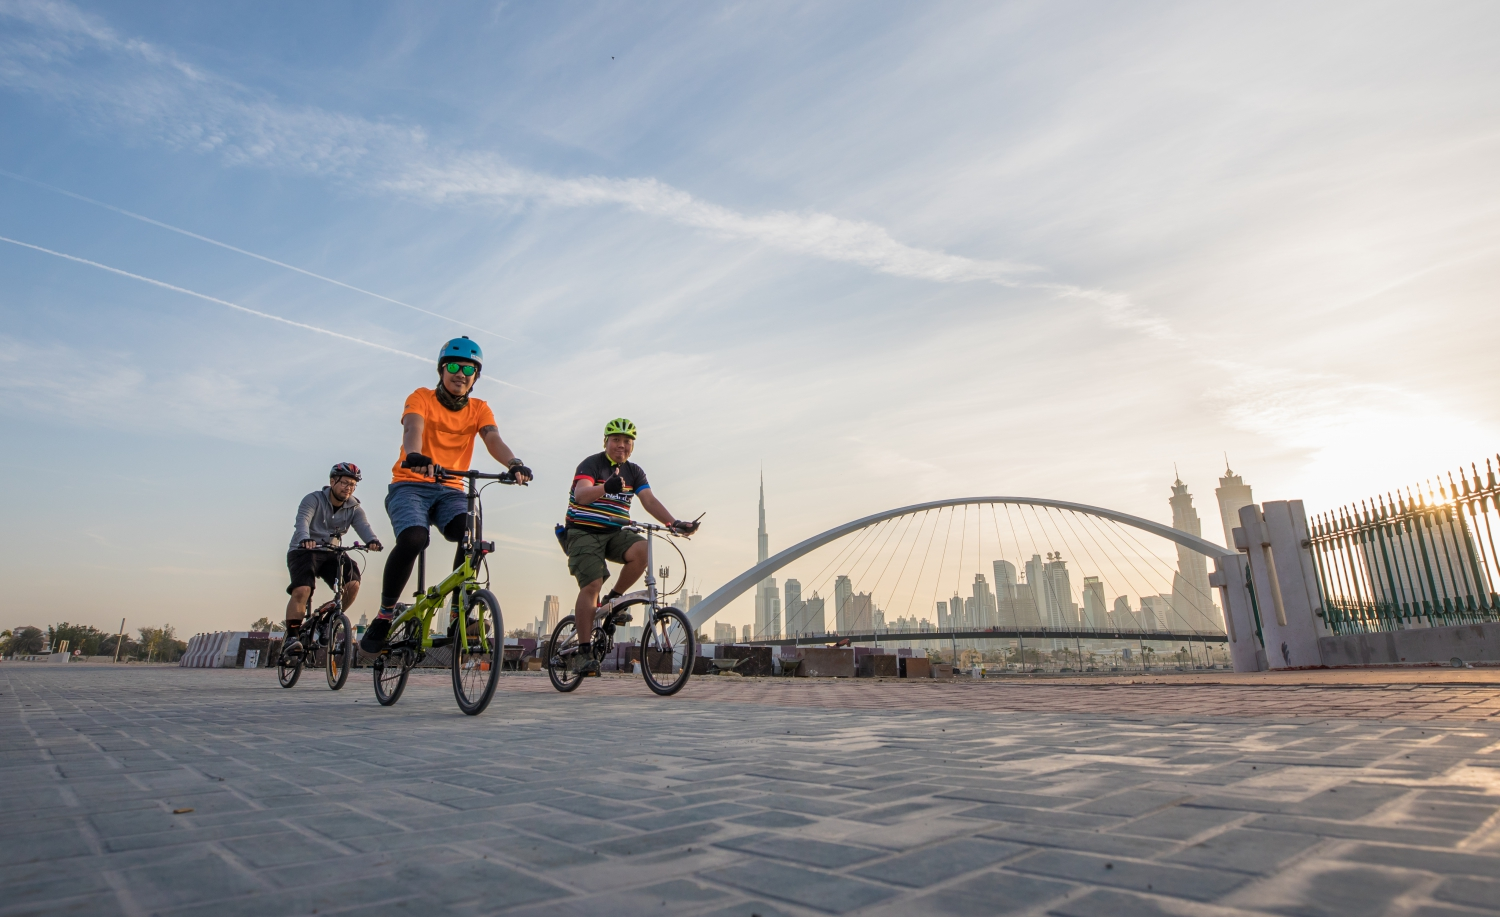 Cycling the Sights of Dubai